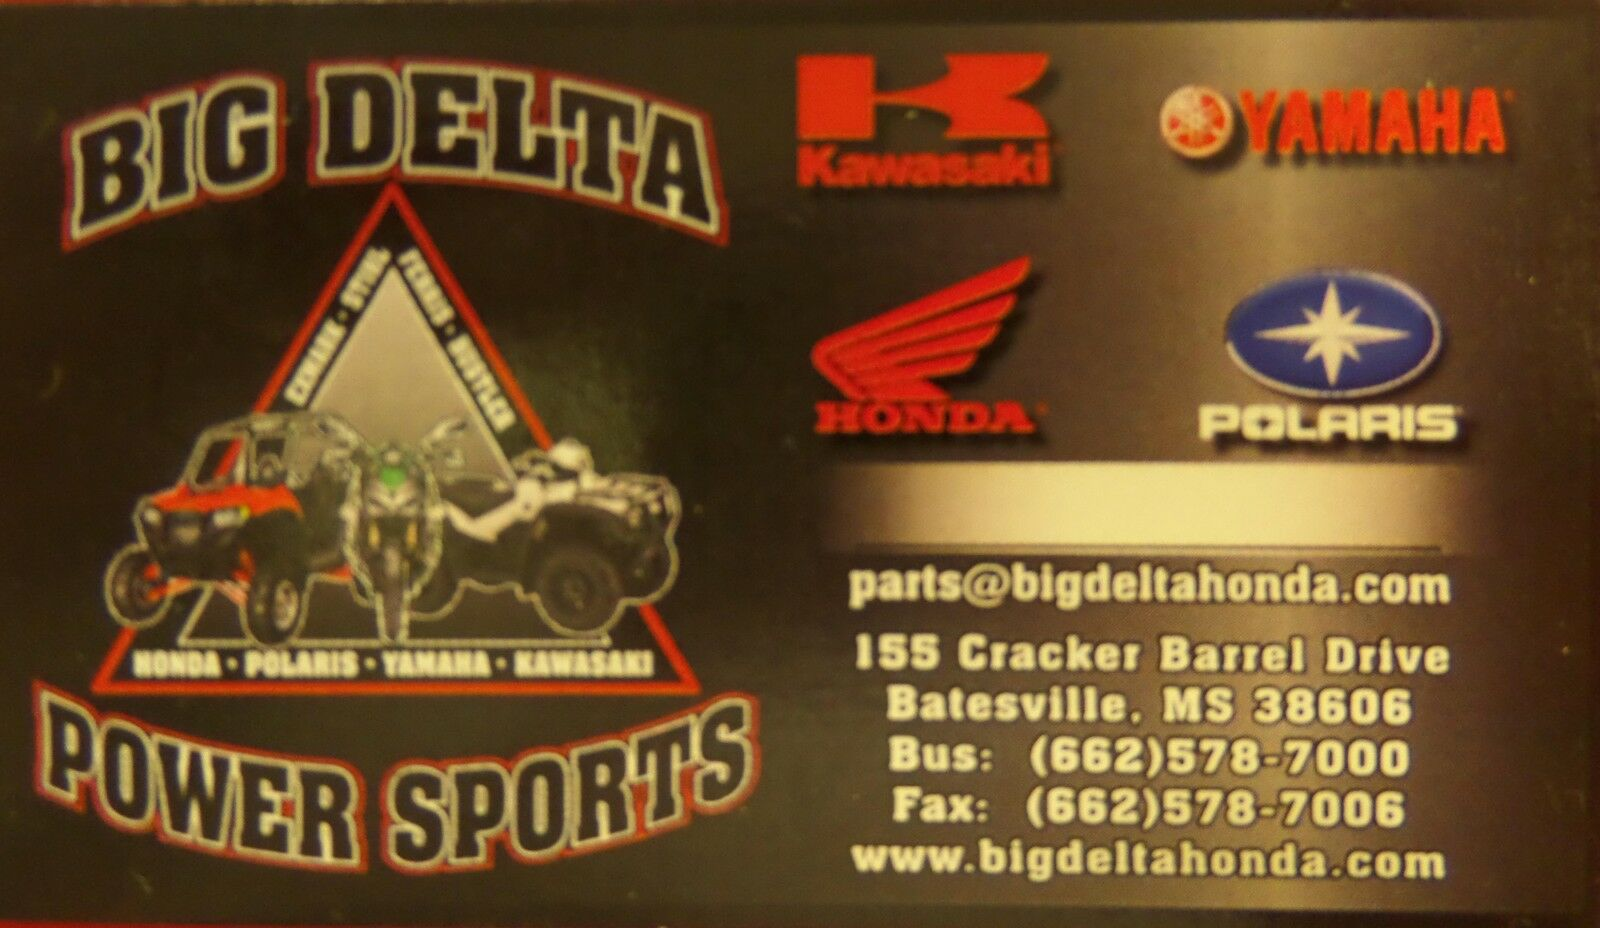 Big Delta Power Sports